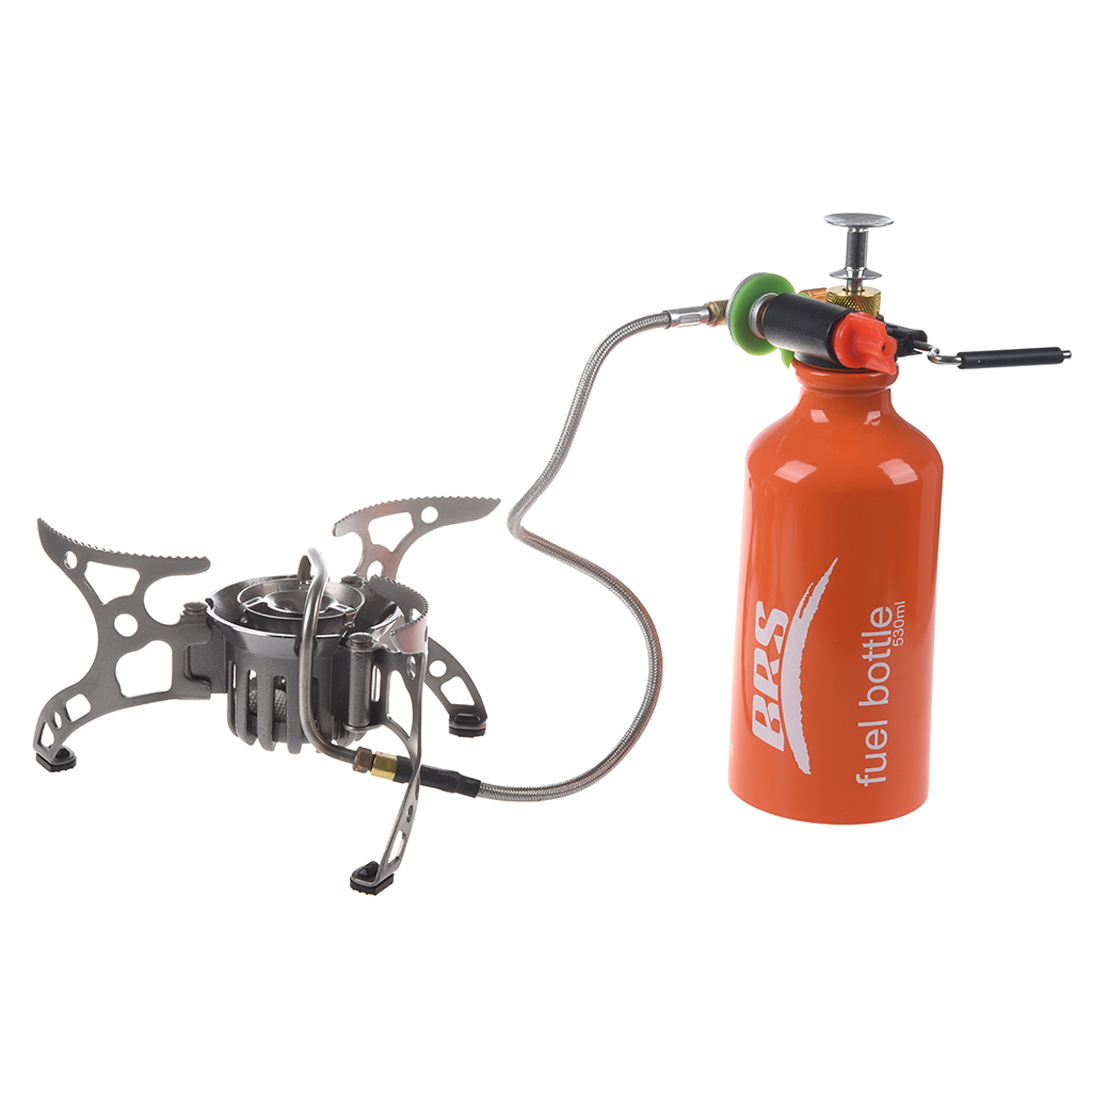 Outdoor Camping Multi-fuel Stove Backpacking Cookware Cooking Picnic Stove Oil Gas Furnace for camping,hiking